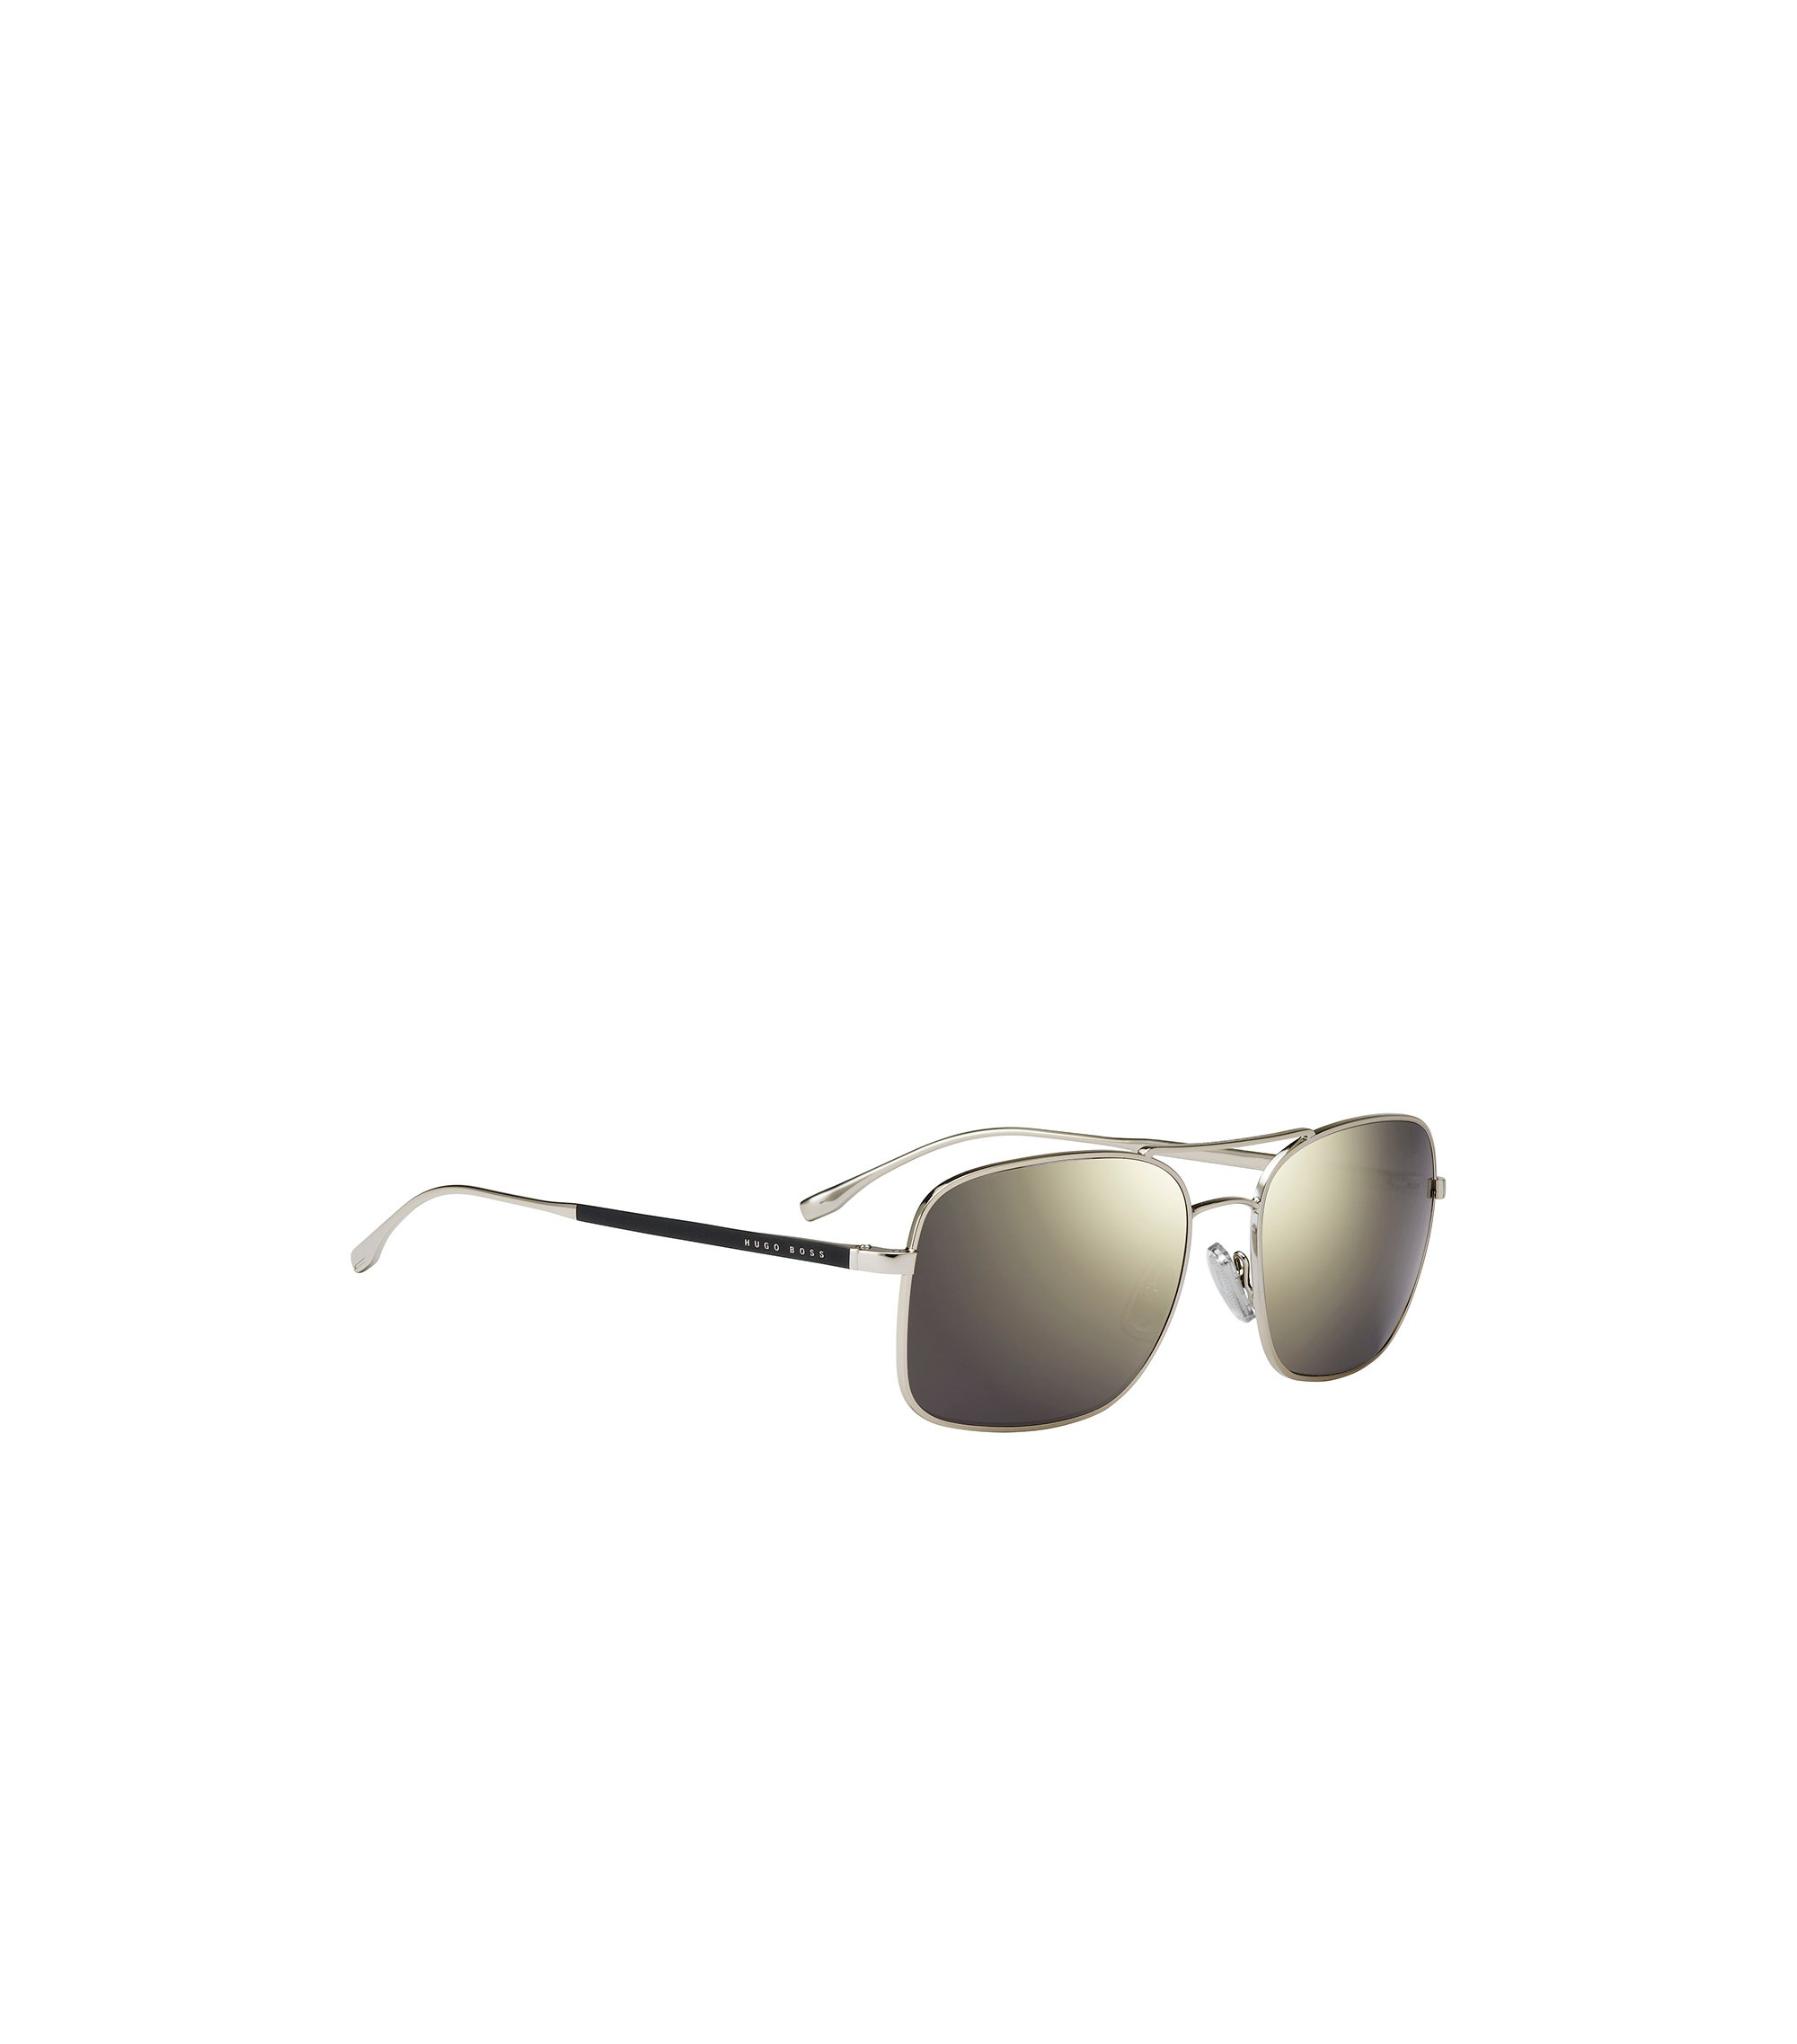 Gunmetal Lens Caravan Sunglasses | BOSS 0781S, Assorted-Pre-Pack